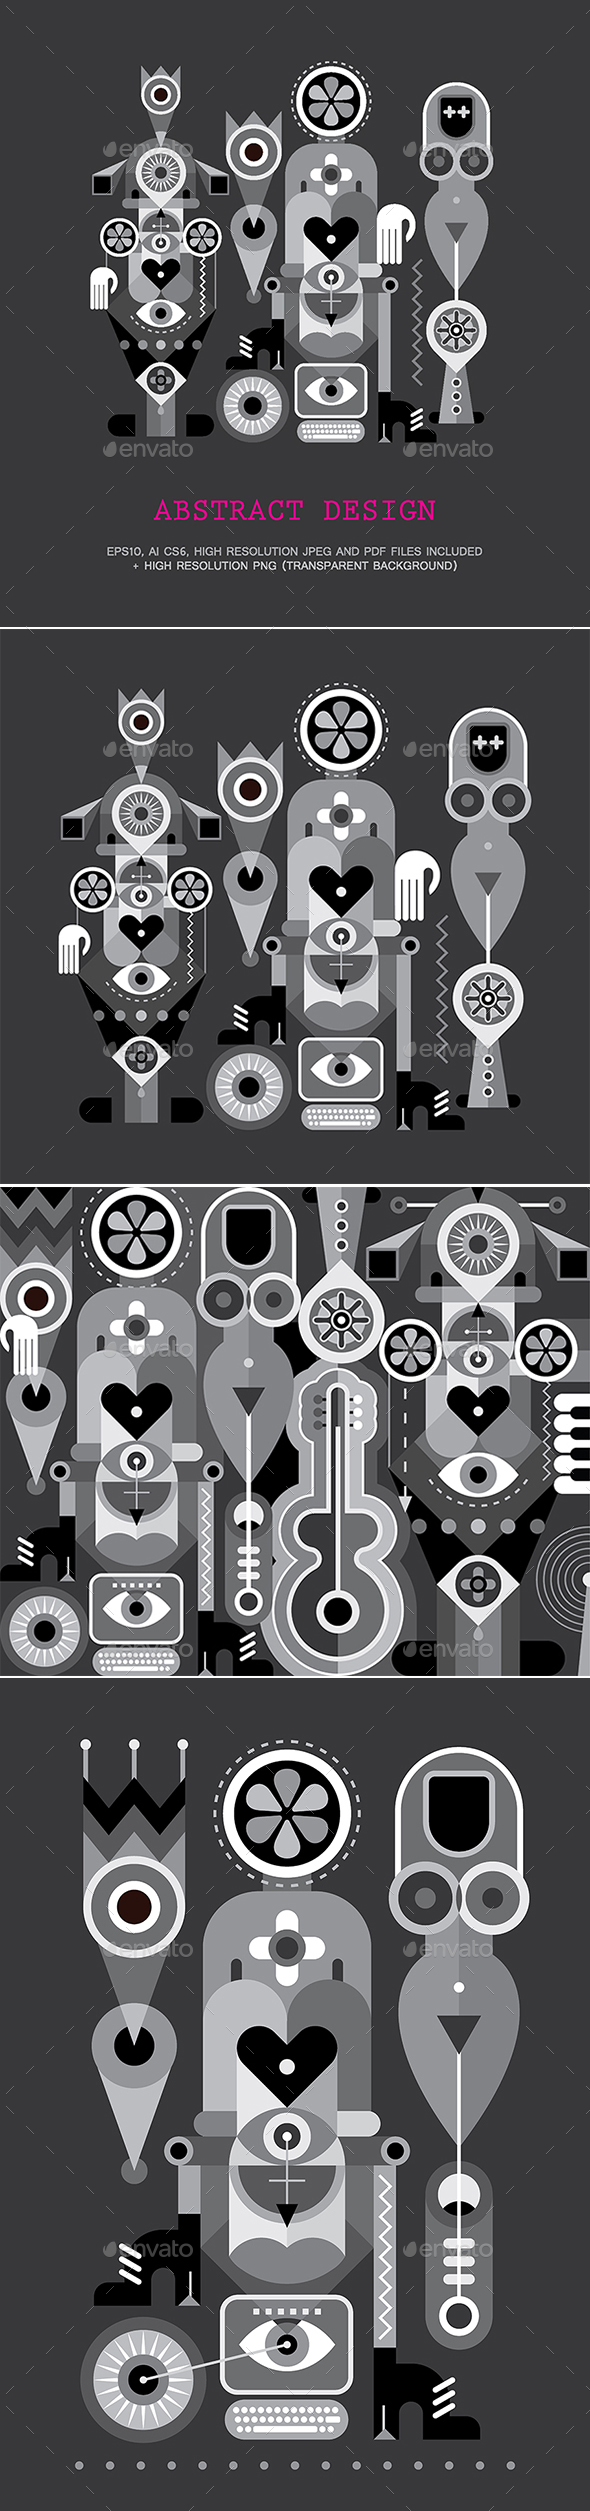 Art Abstract Design - Objects Vectors